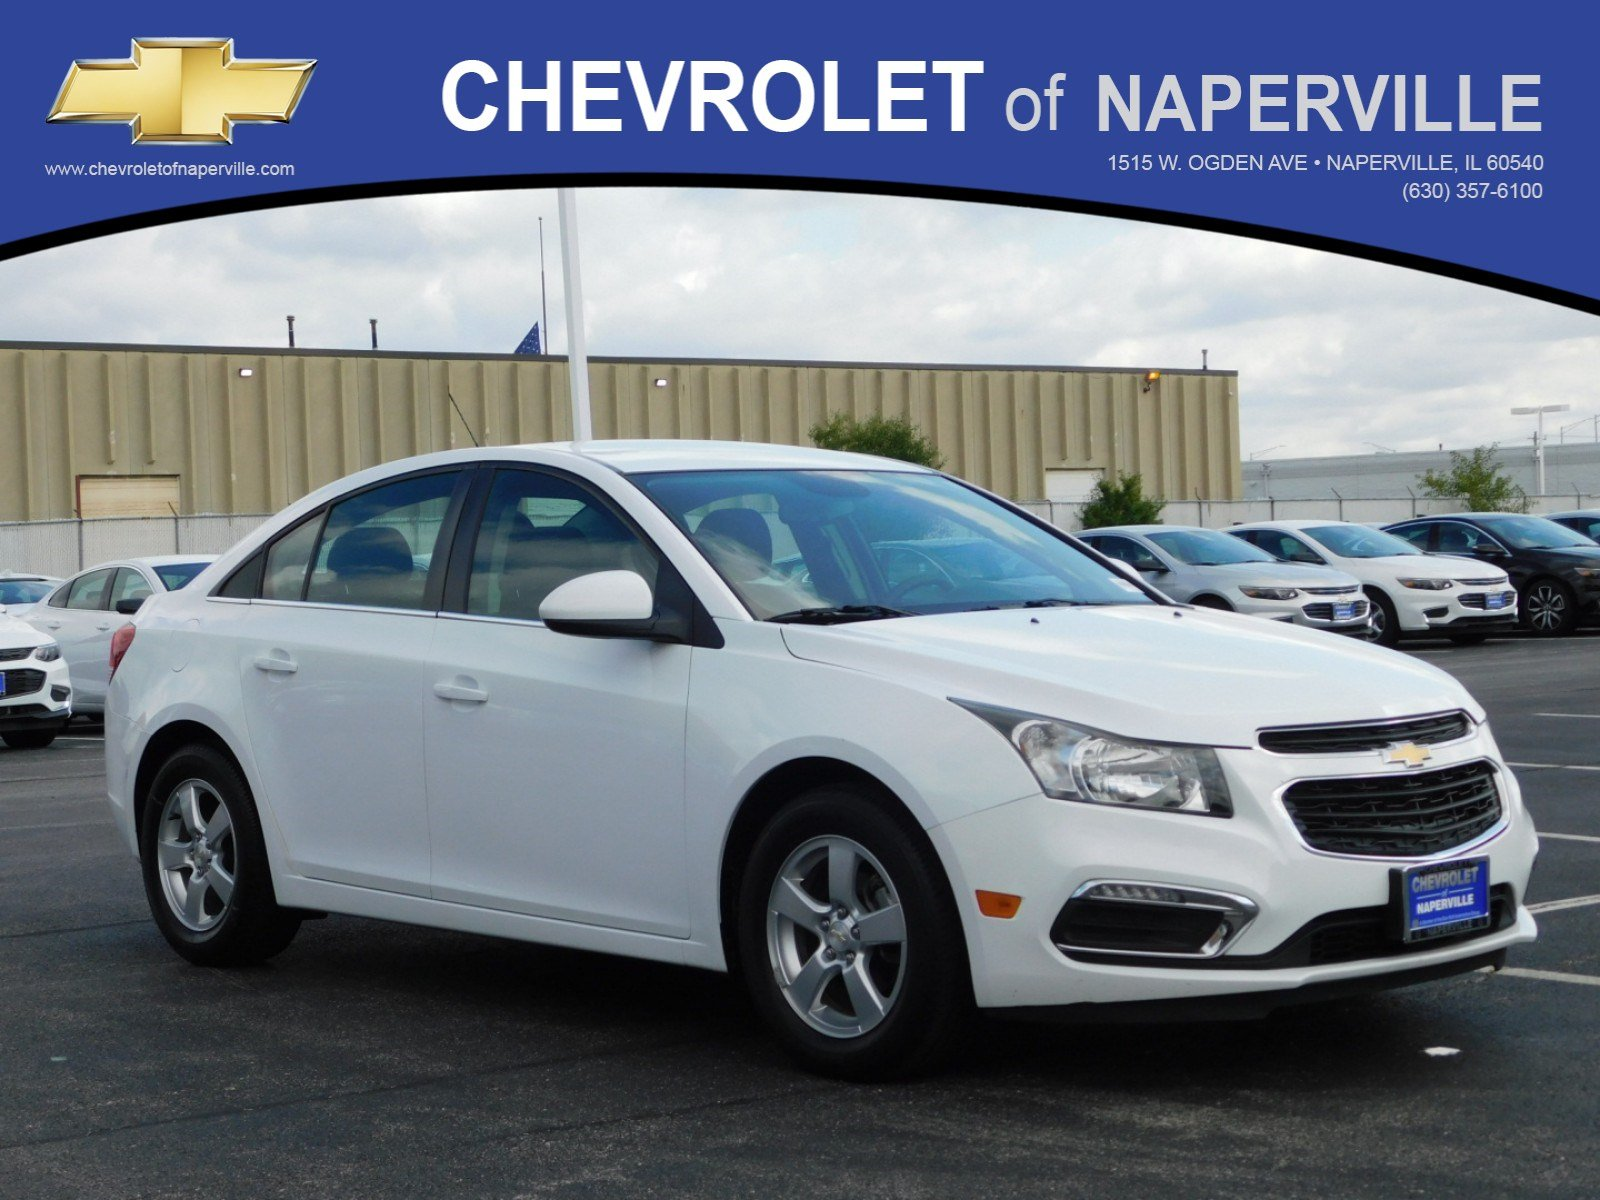 Chevrolet Cruze Owners Manual: Roof